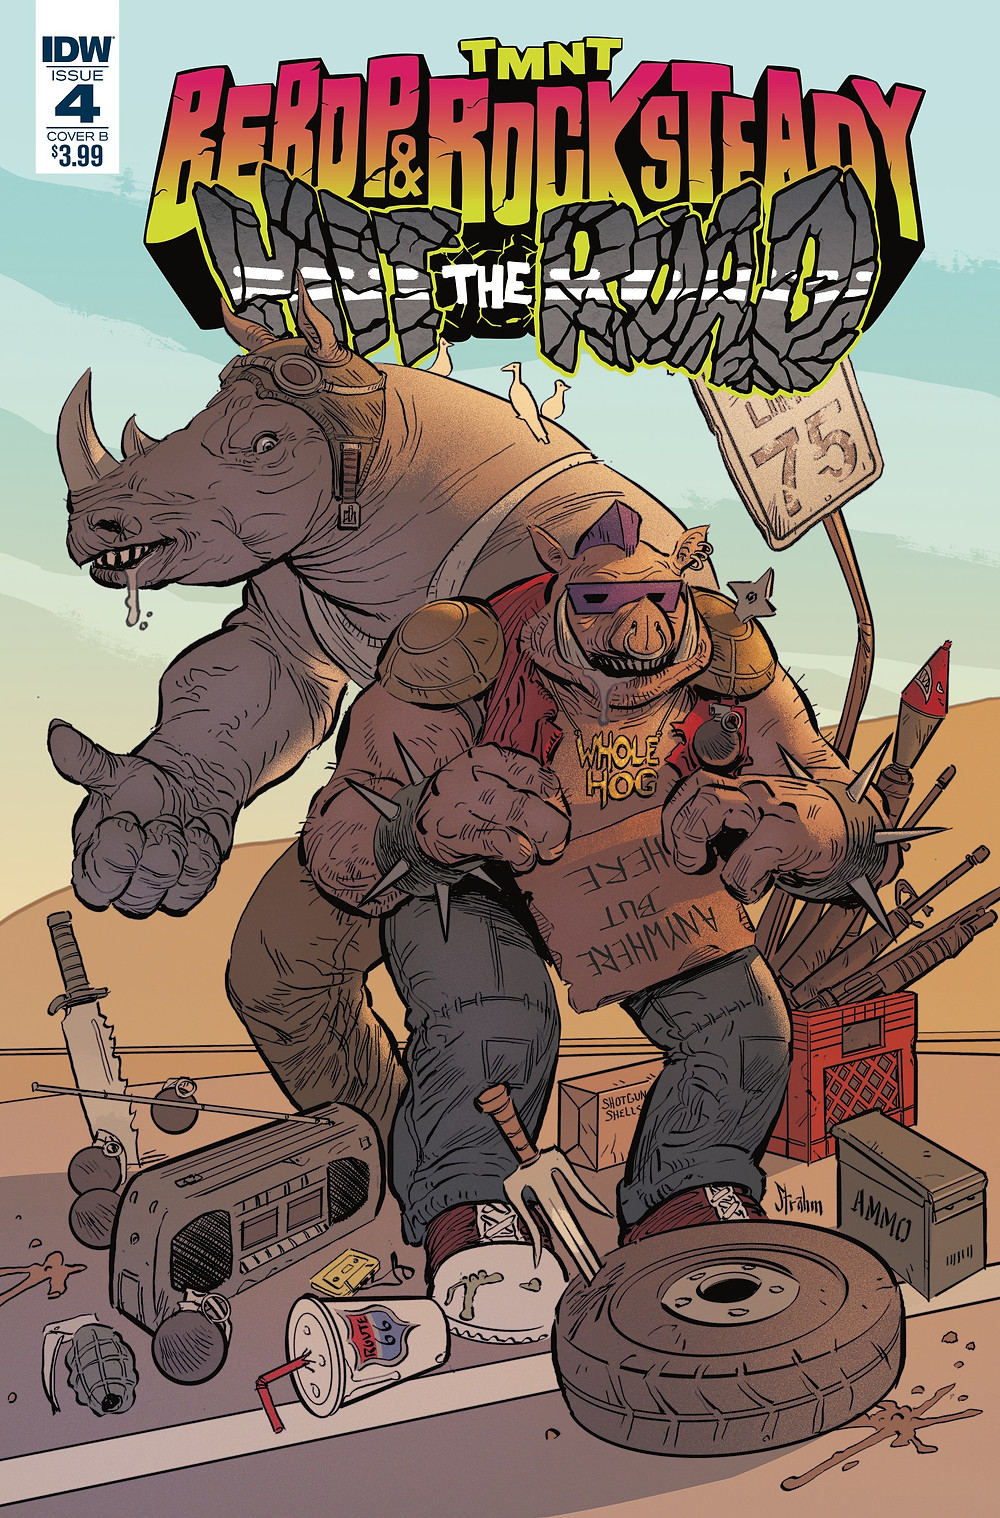 Beboy & Rocksteady Hit the Road # 4 Variant cover by Kyle Strahm